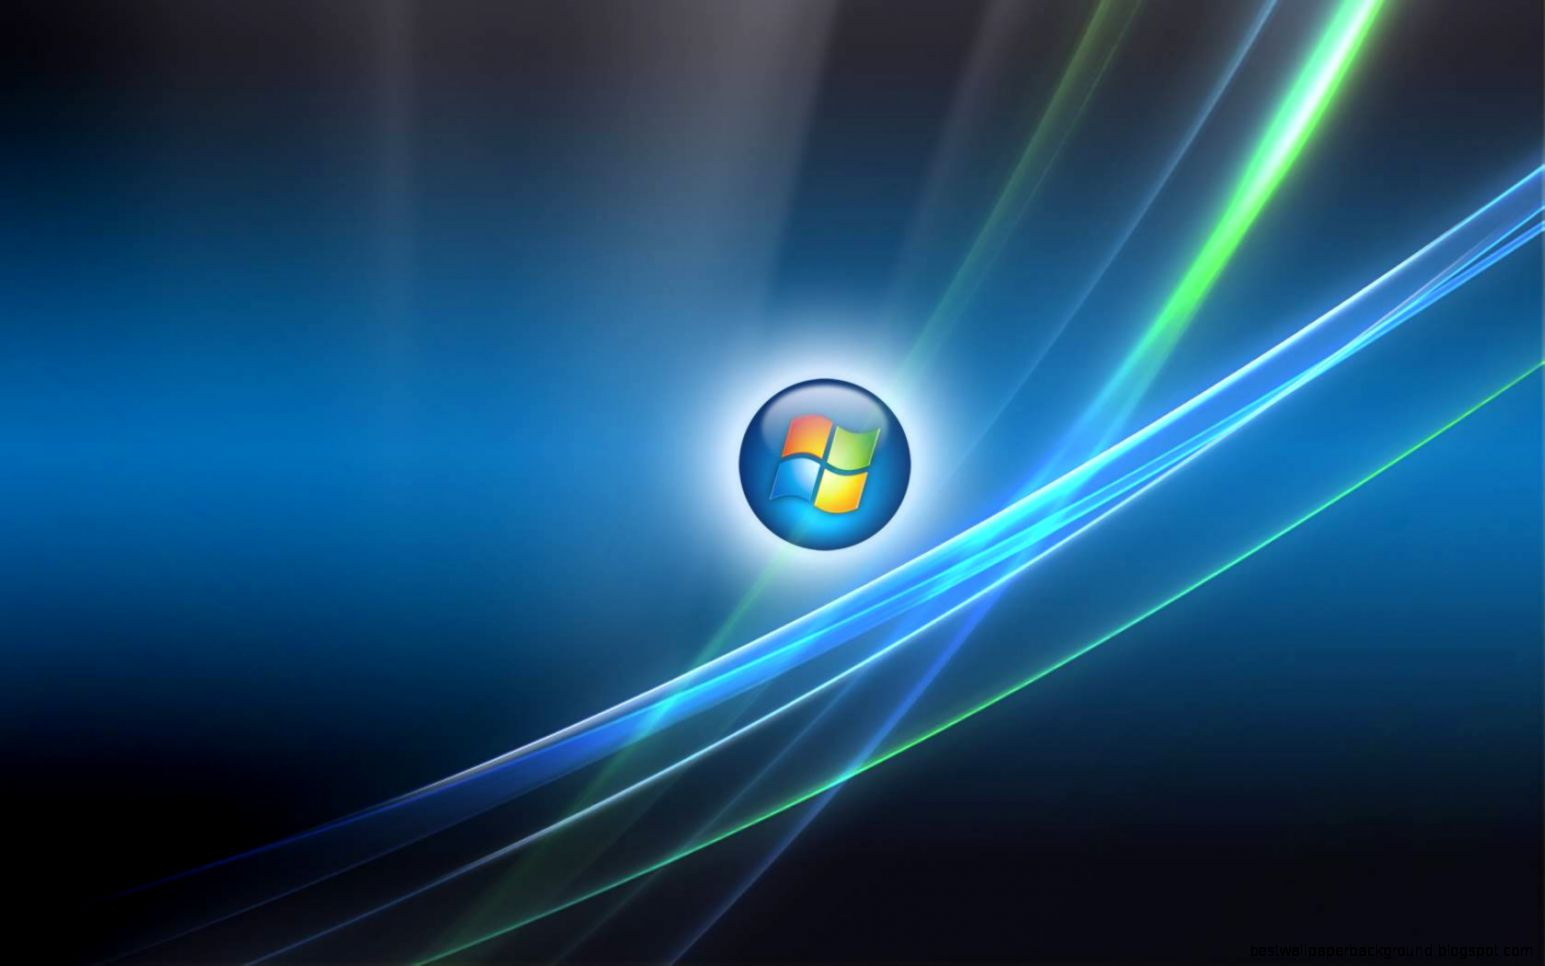 Windows Vista Ultimate hd Wallpaper   Helicalus – HD Wallpapers